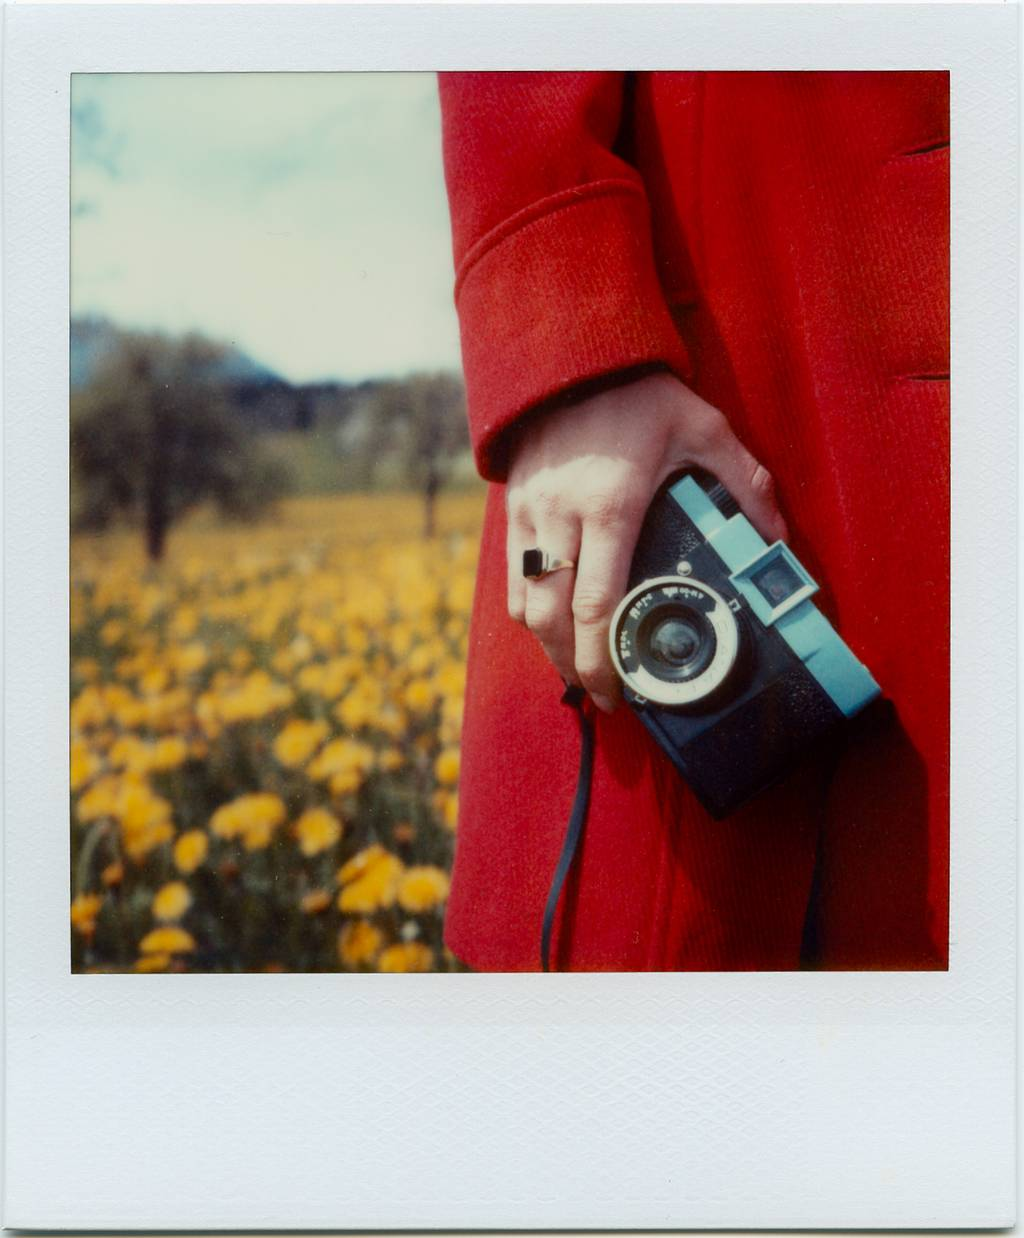 Lomography Magazine Wants Your Reviews!